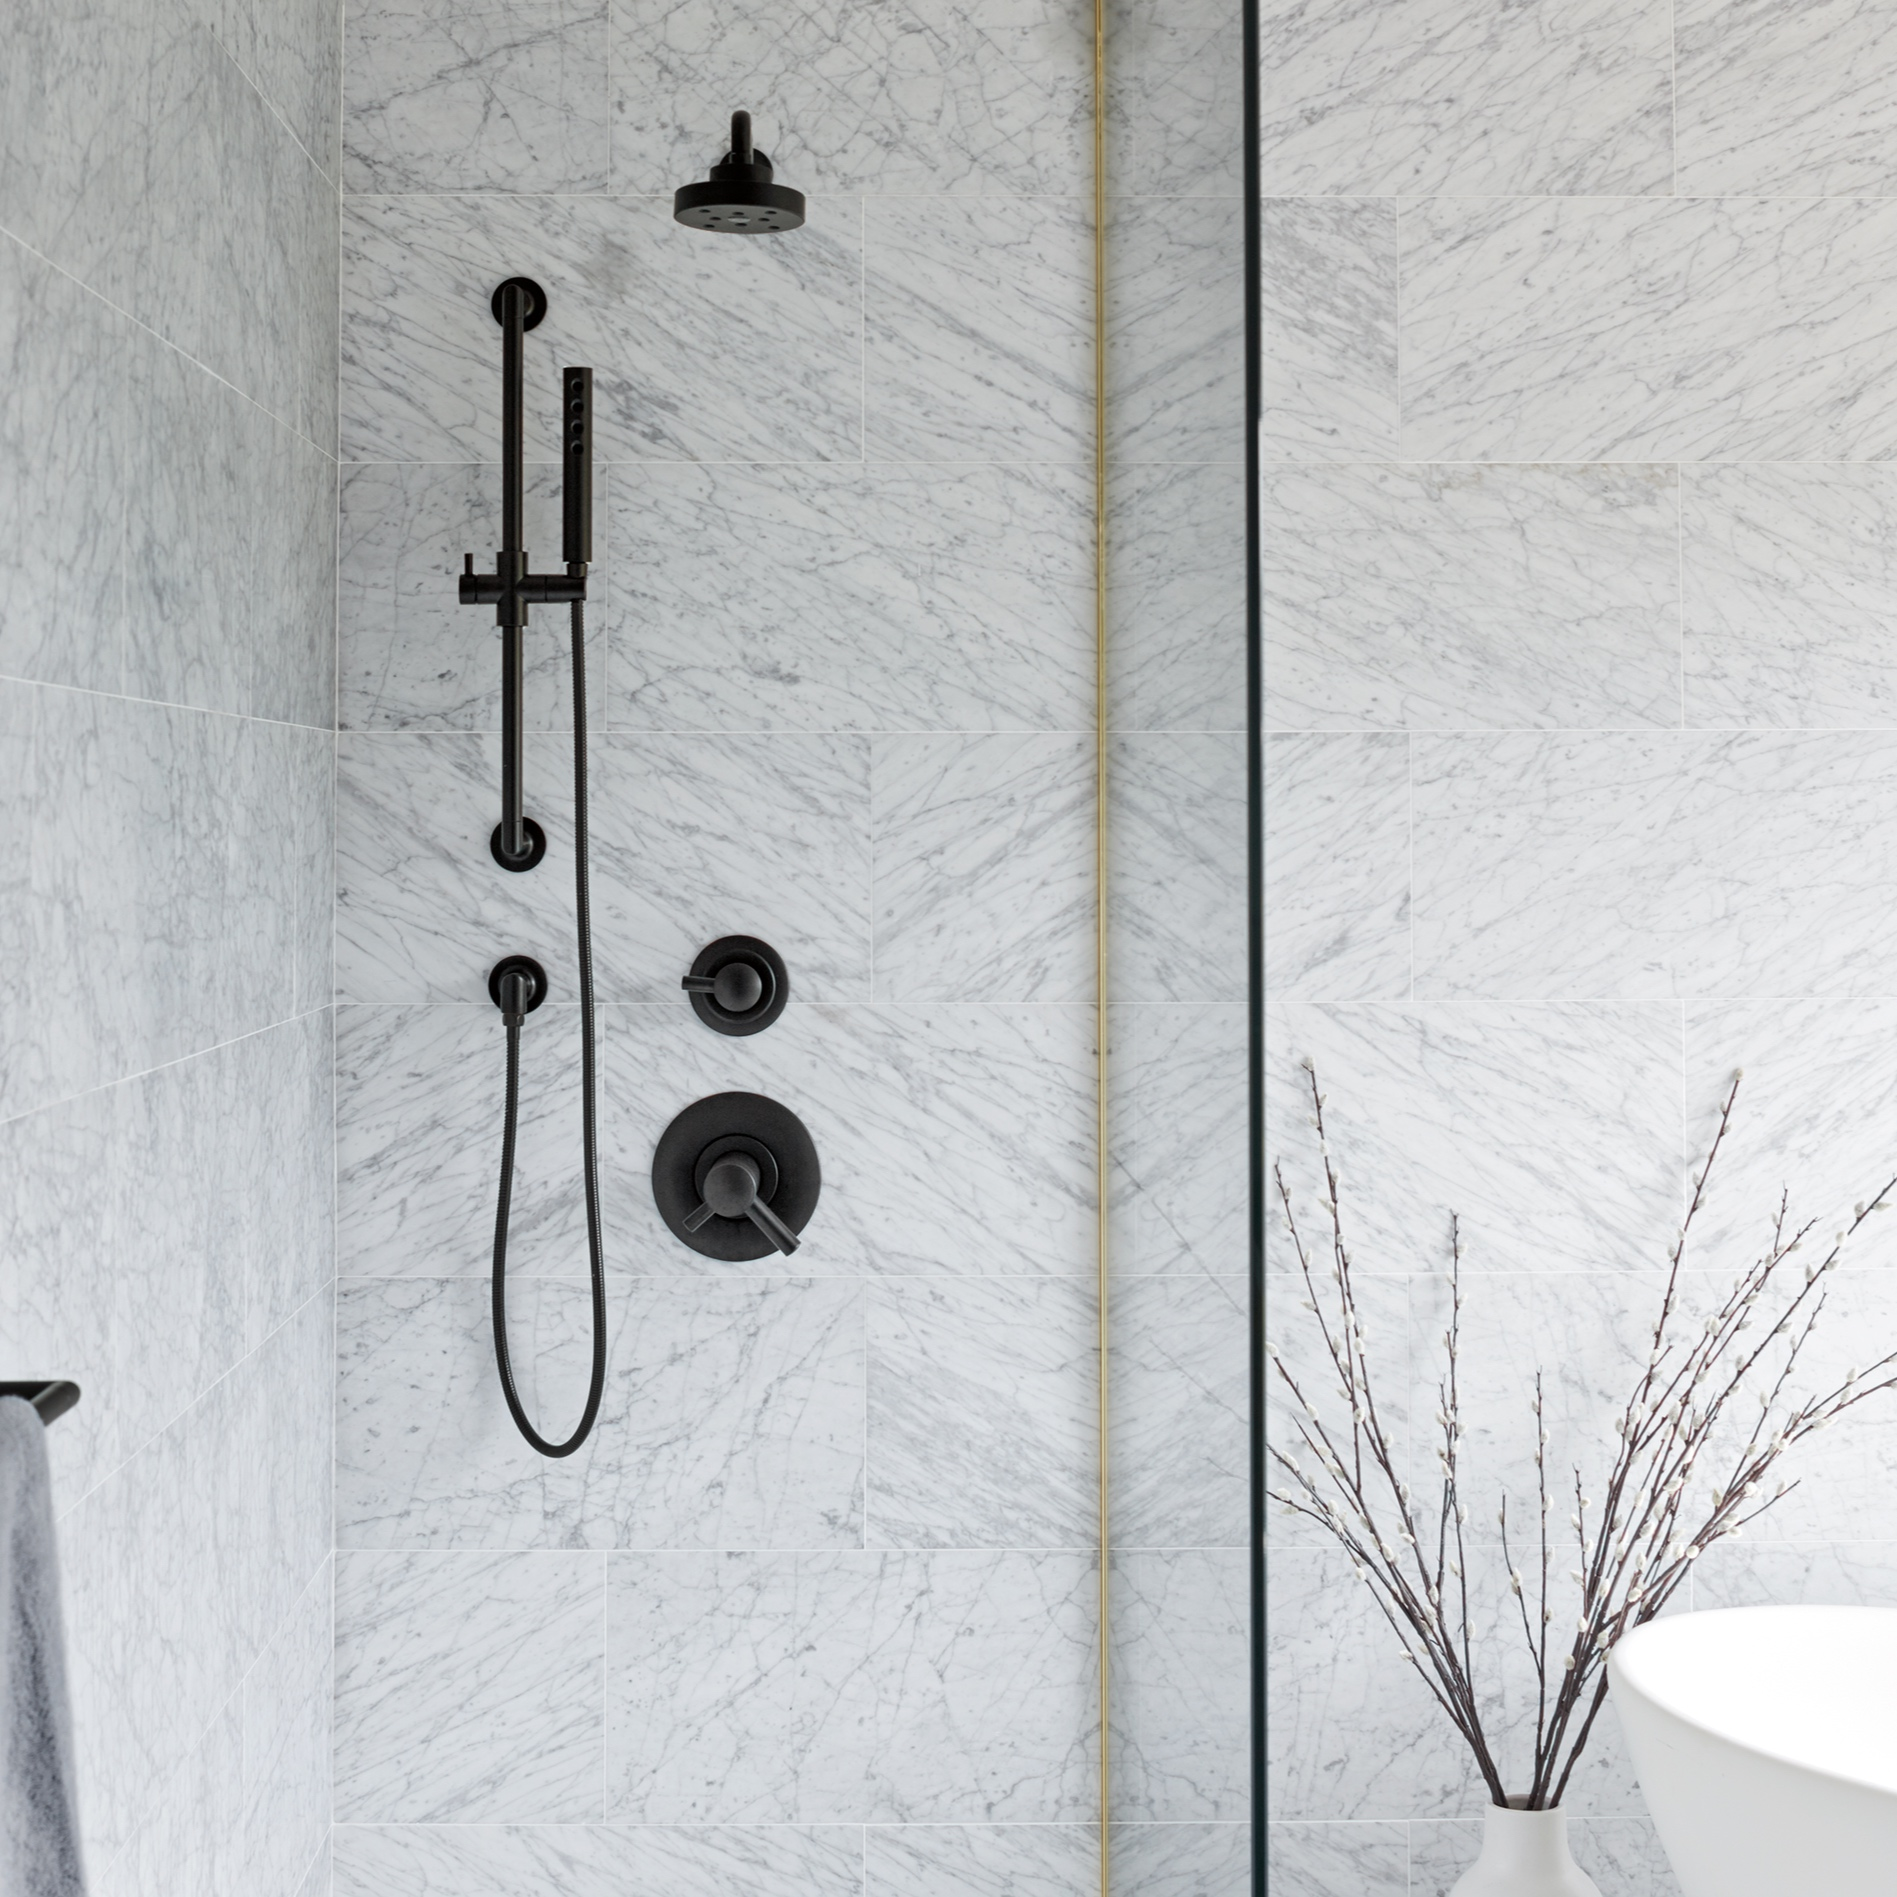 SHOWER SYSTEMS - - Thermo-controls, pressure balance, expose